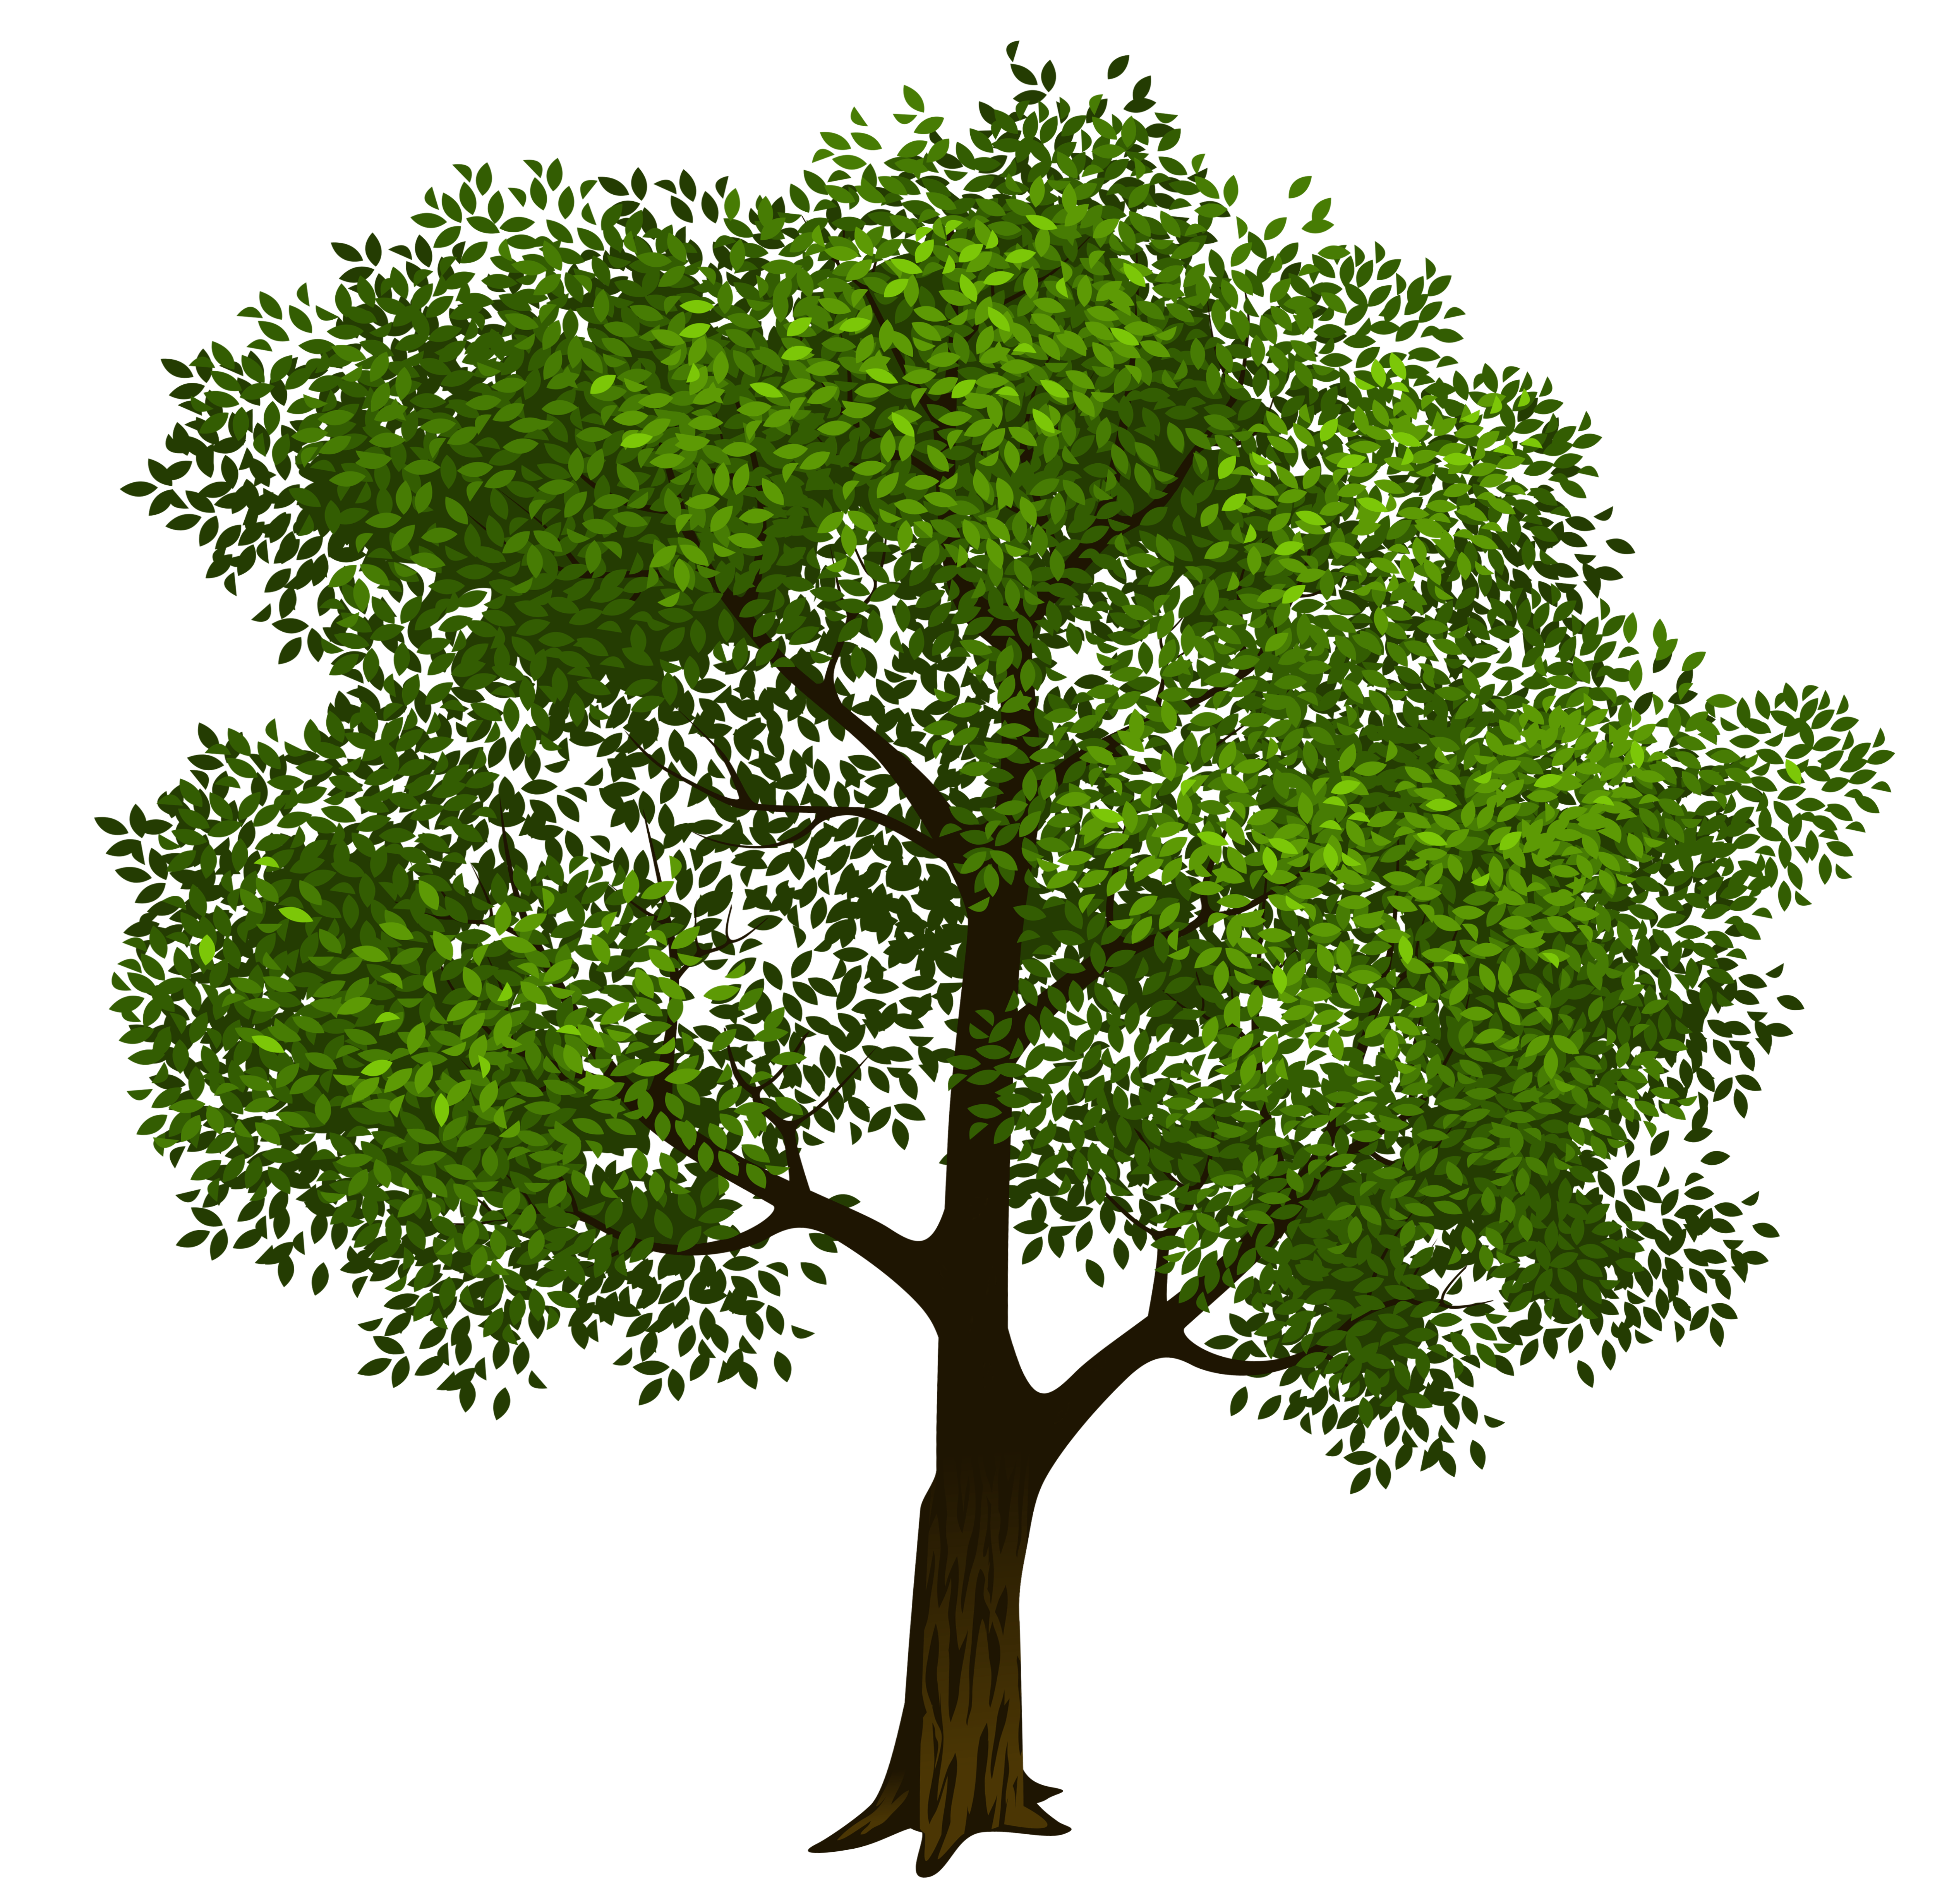 Free clipart trees images picture stock Family tree clipart free clipart images - Cliparting.com | DIY and ... picture stock